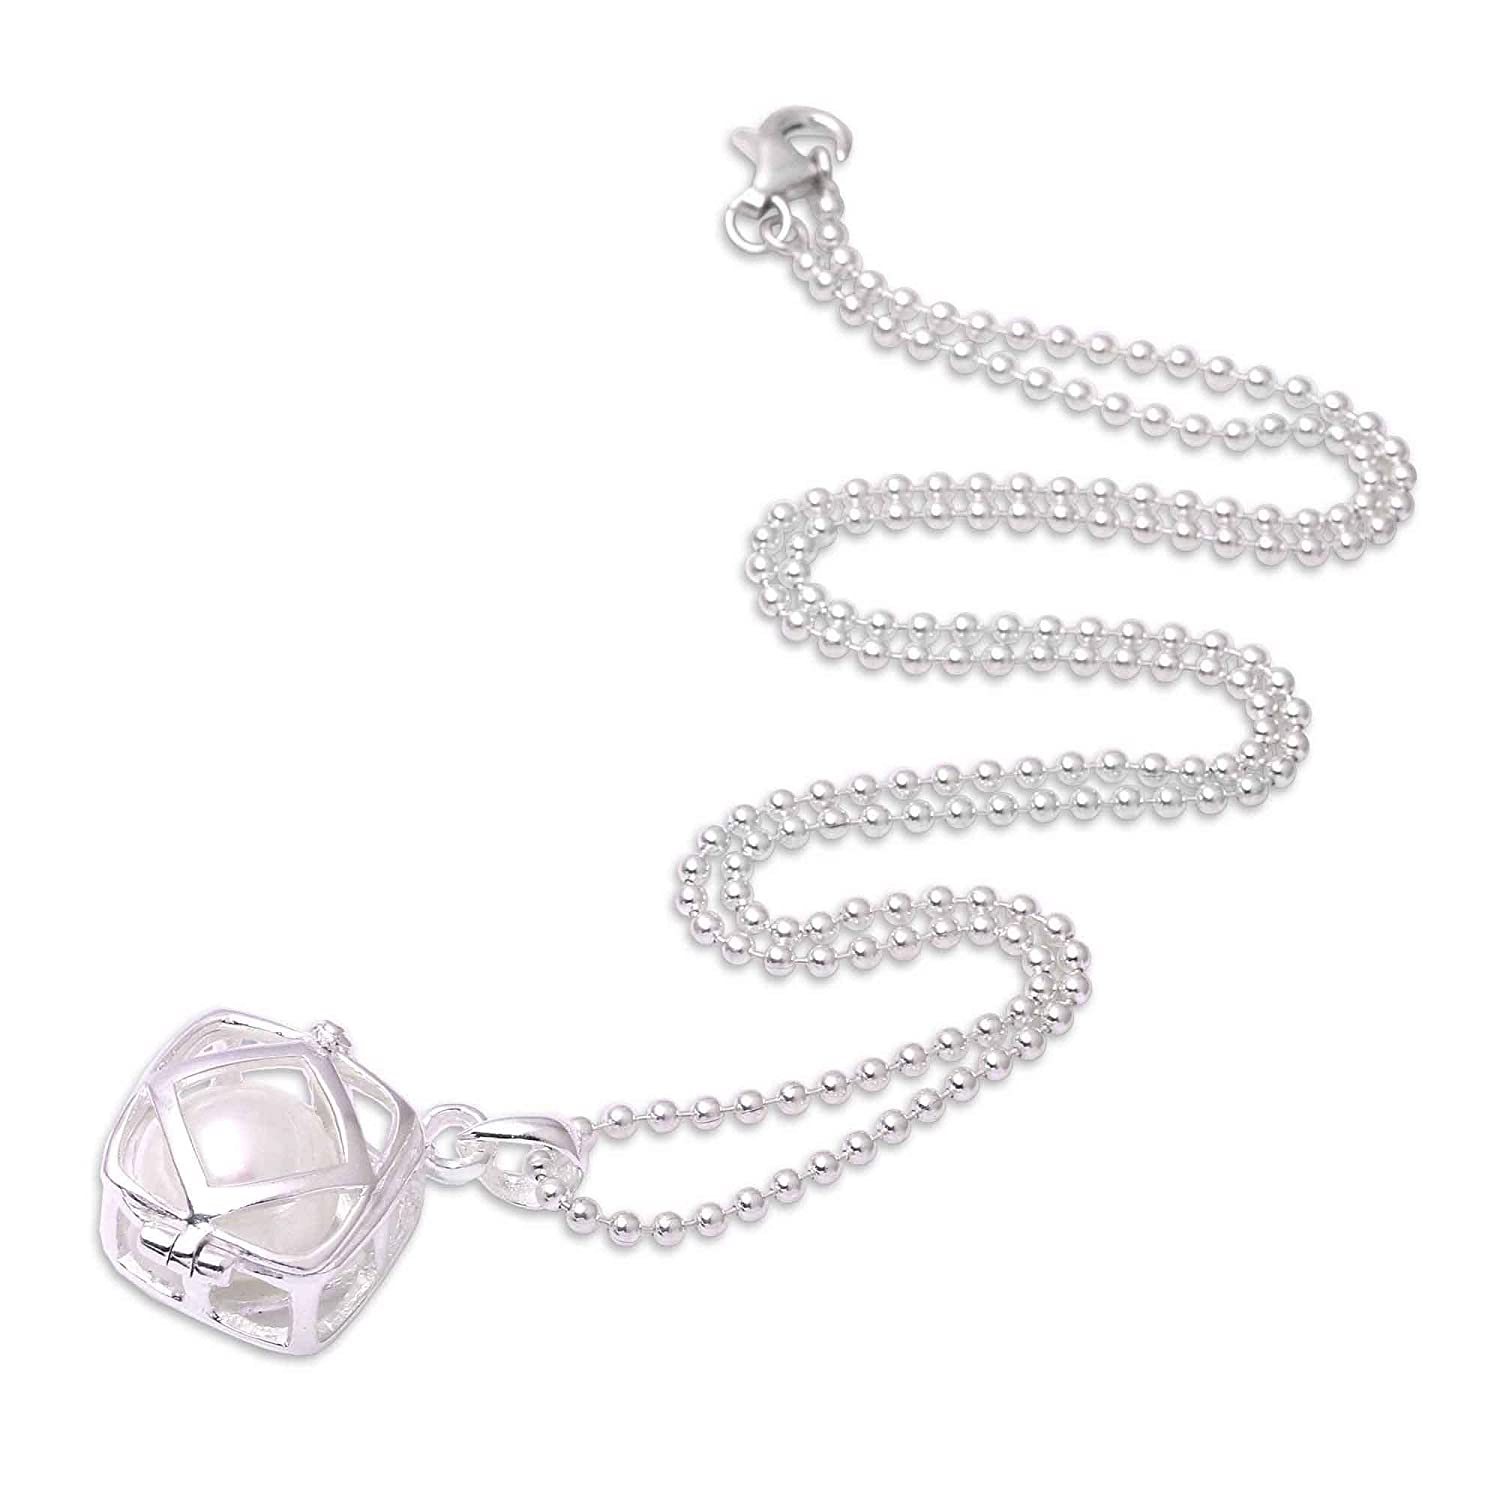 NOVICA Silver White Cultured Freshwater Pearl .925 Silver Necklace 20 Glow Within